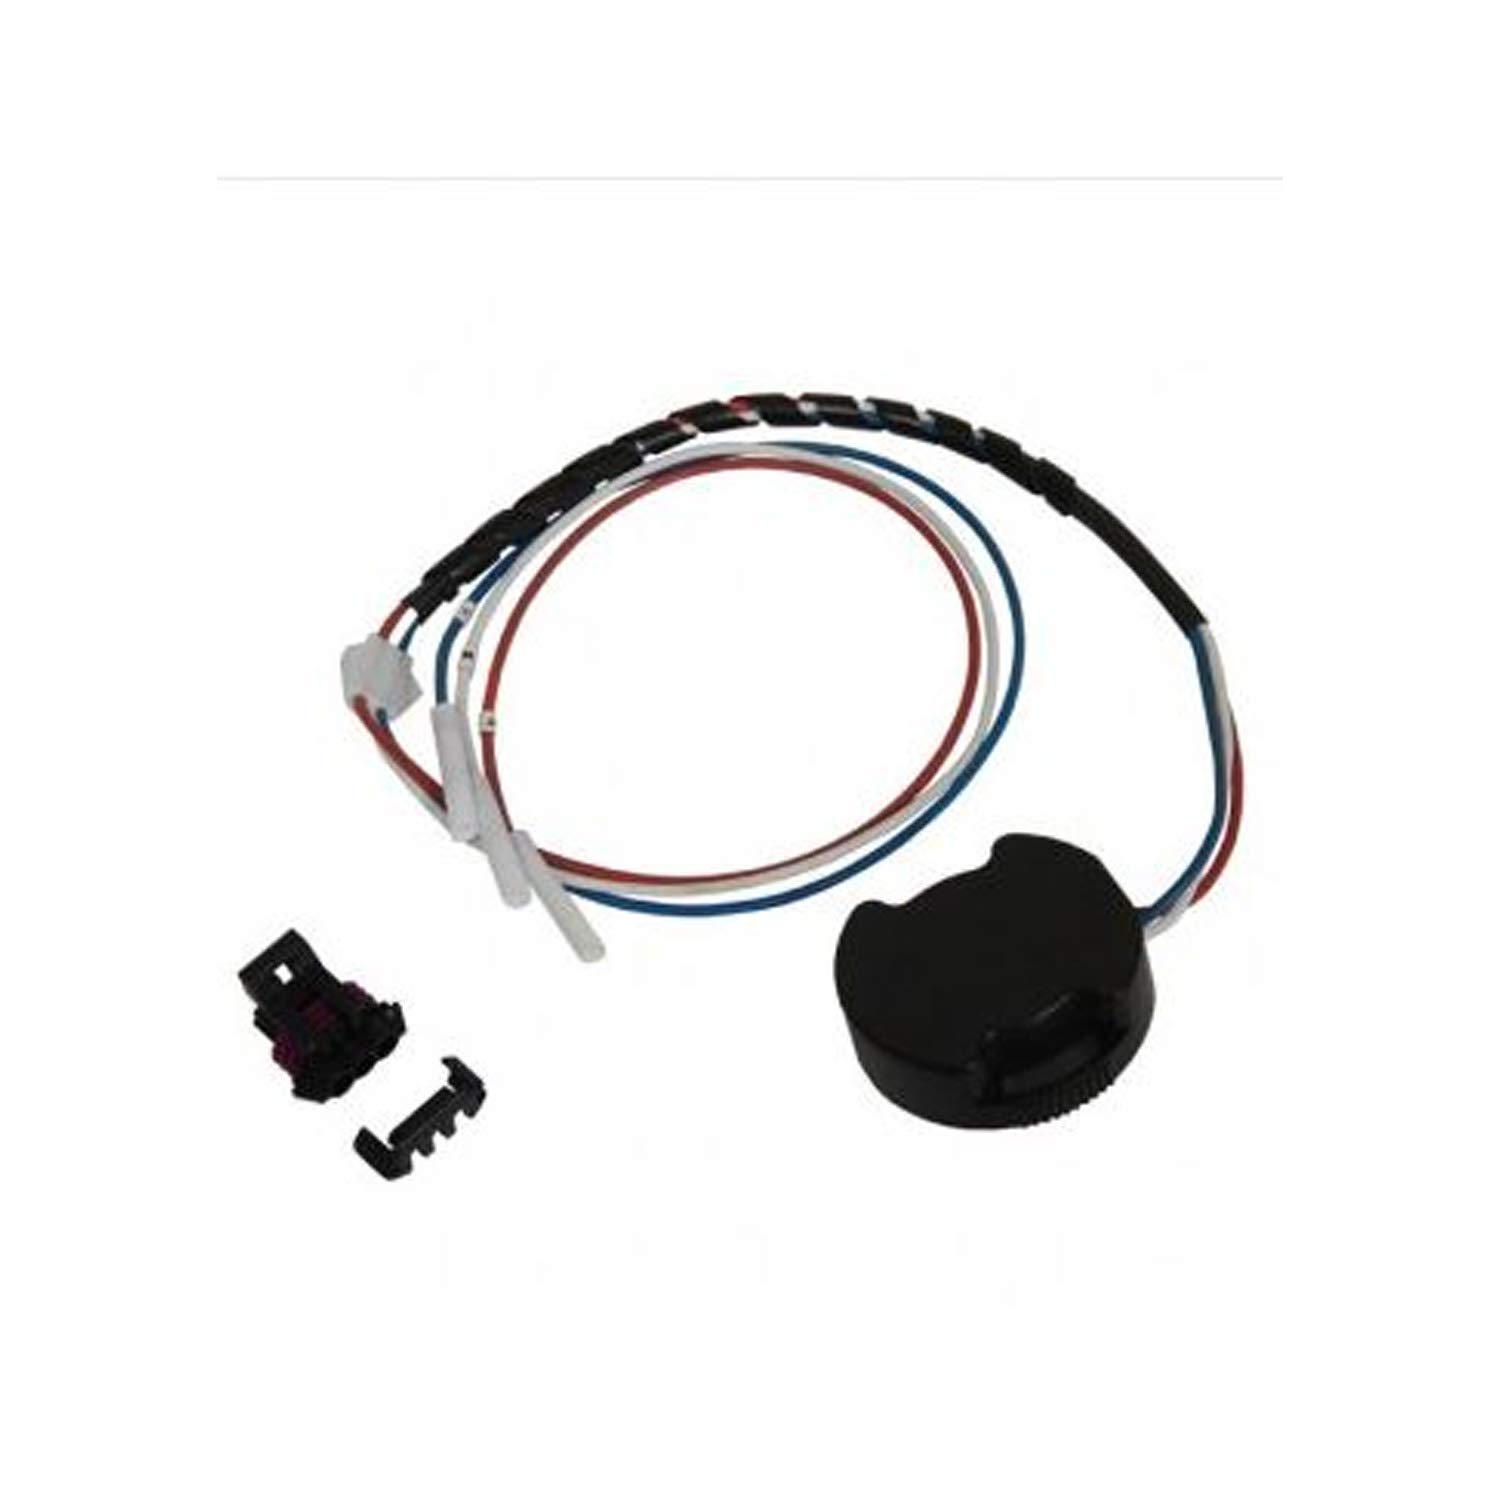 Amazon.com: Mercury OEM Trim Sender Sensor Assembly 863187A1 Smartcraft:  Automotive